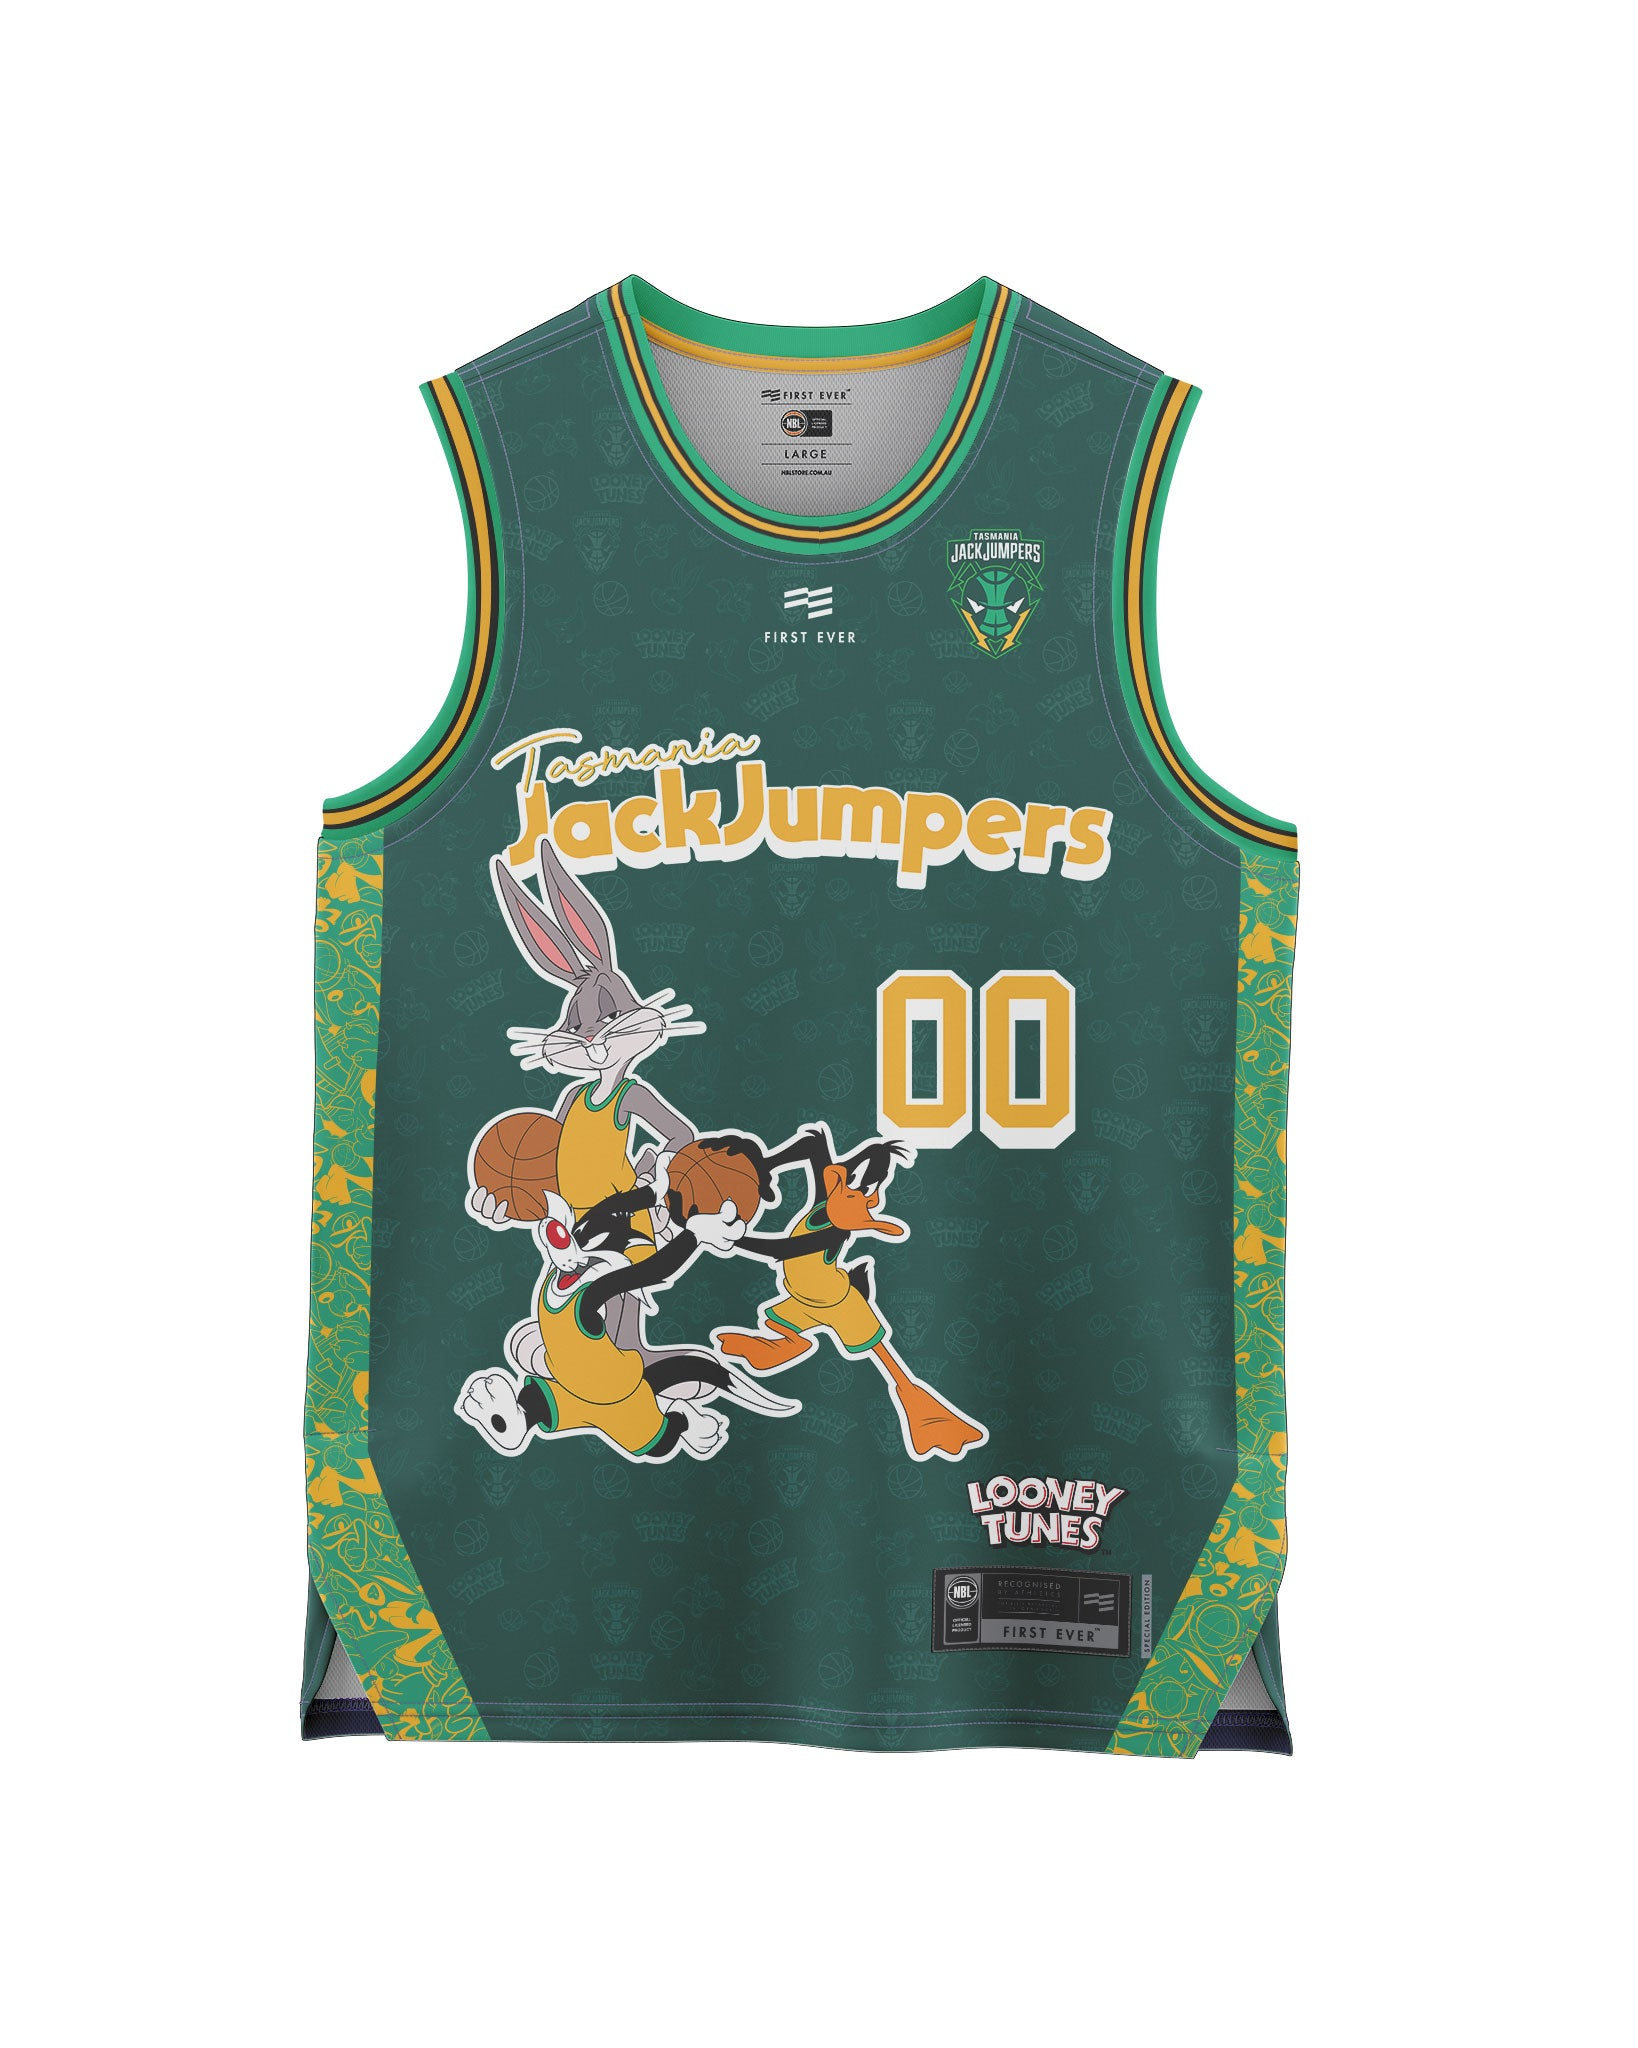 Tasmania JackJumpers 20/21 Looney Tunes Youth Fan Jersey - Personalised